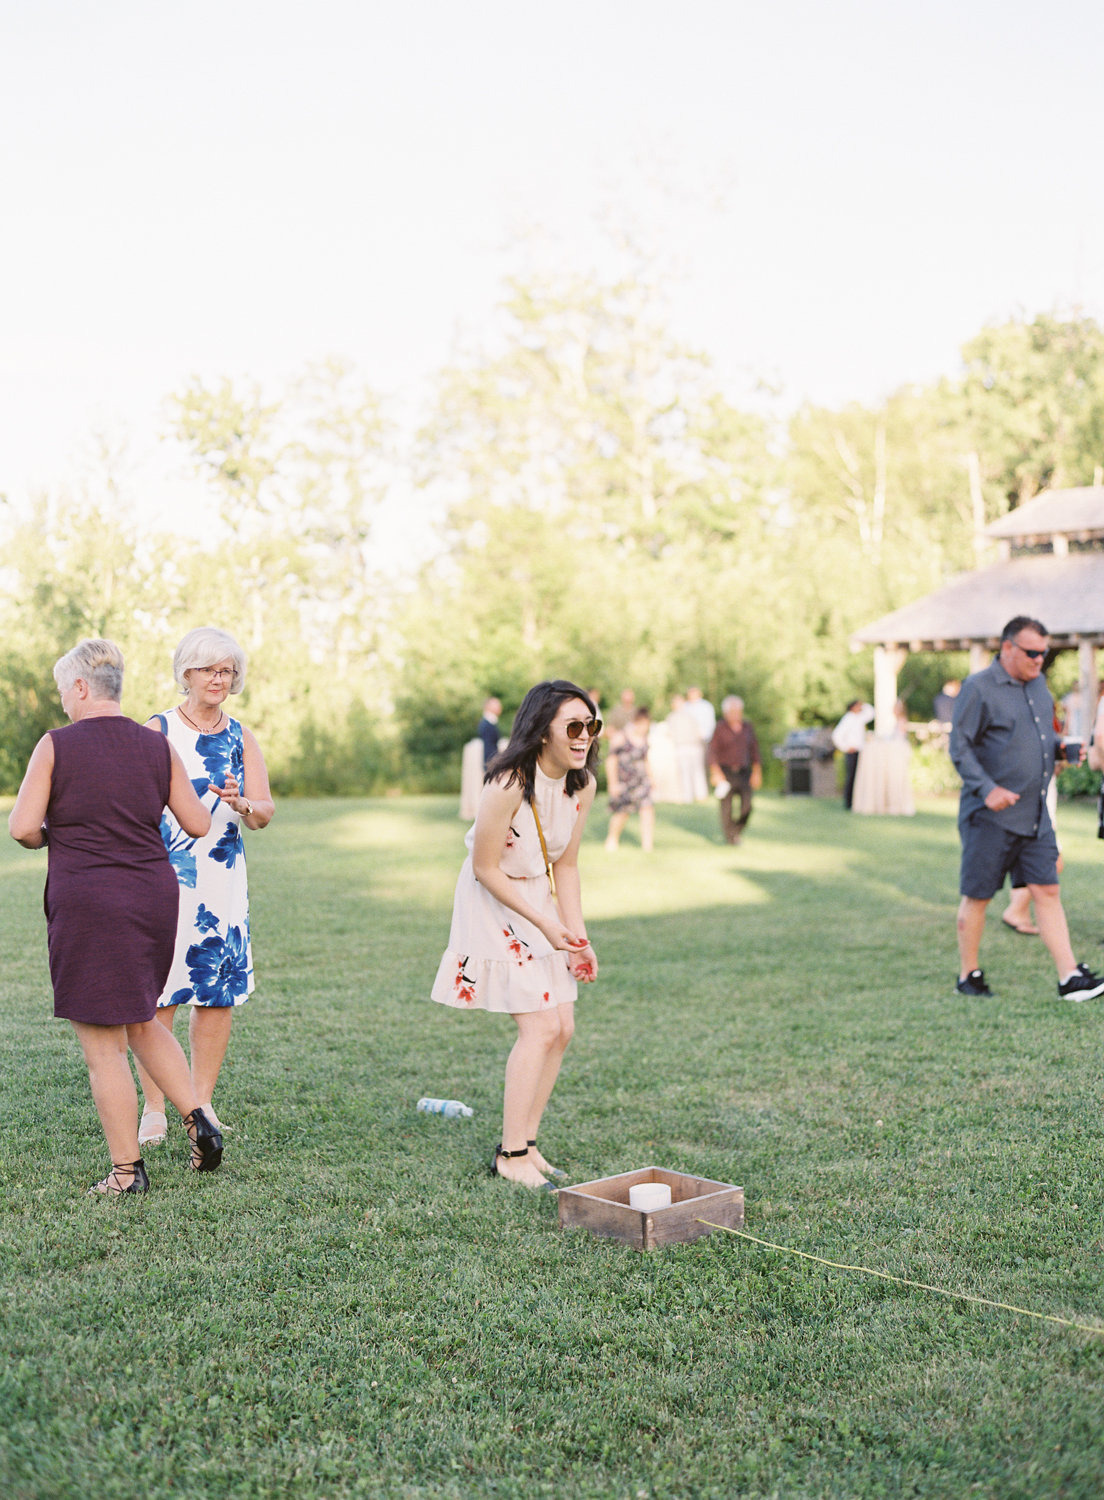 Jacqueline Anne Photography - Nova Scotia Backyard Wedding-60